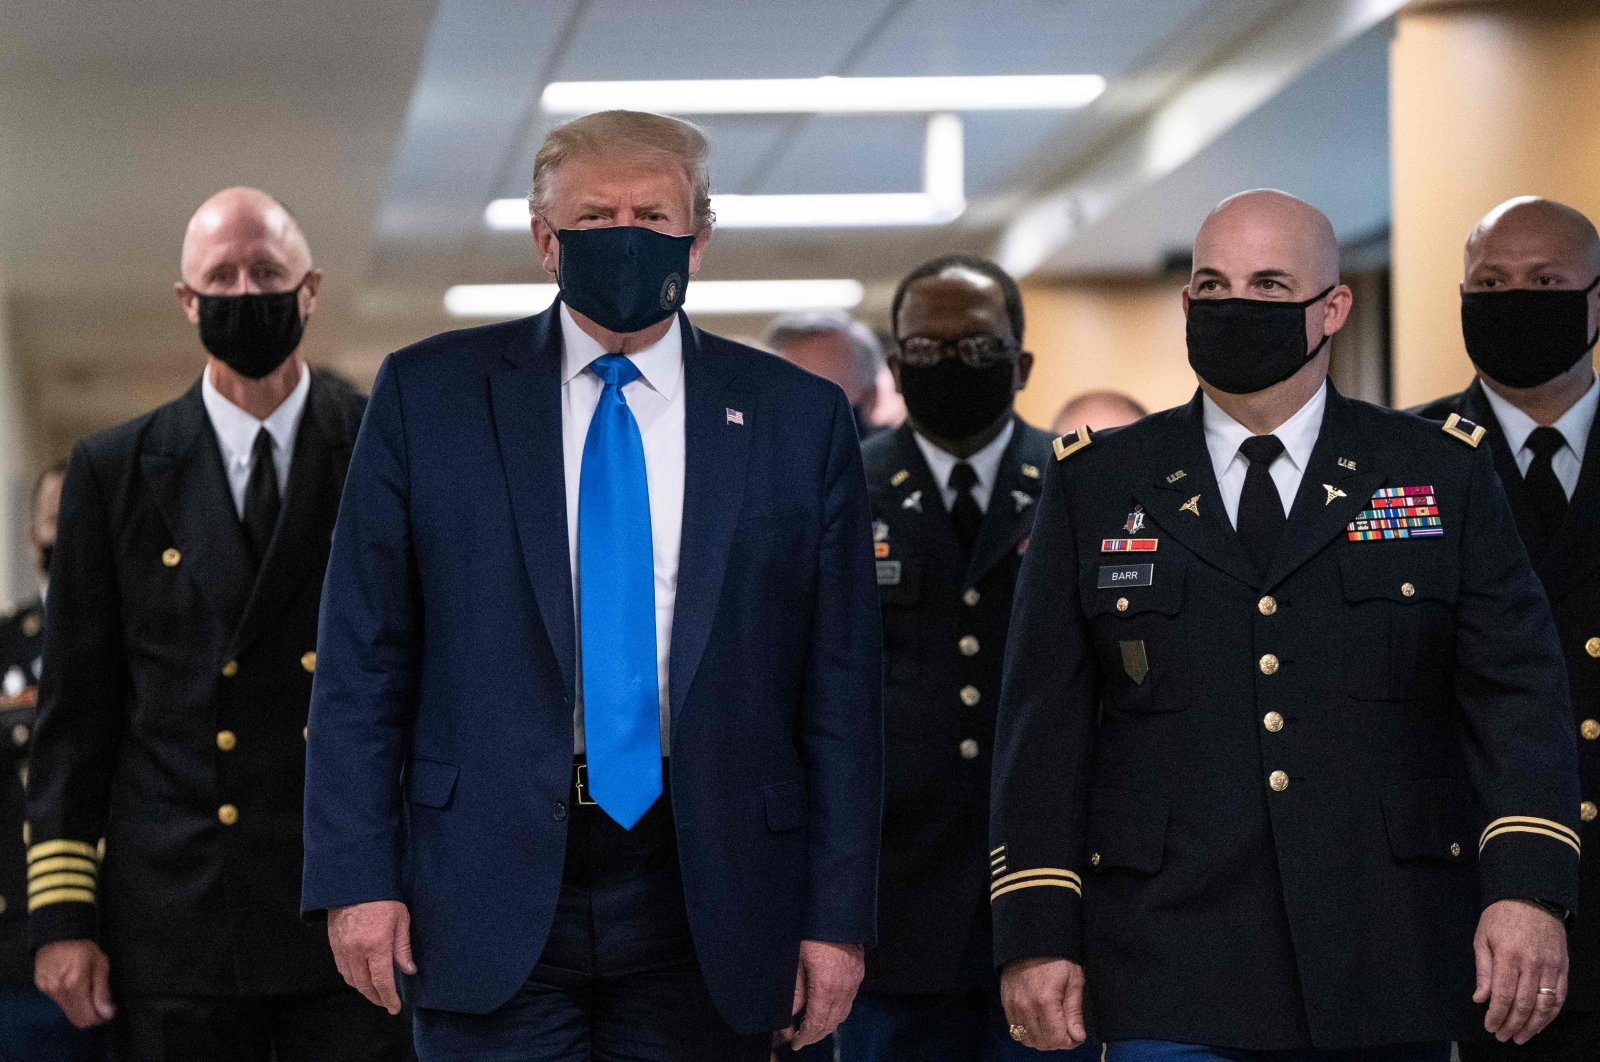 U.S. President Donald Trump wears a mask as he visits Walter Reed National Military Medical Center in Bethesda, Maryland, U.S., July 11, 2020. (AFP Photo)